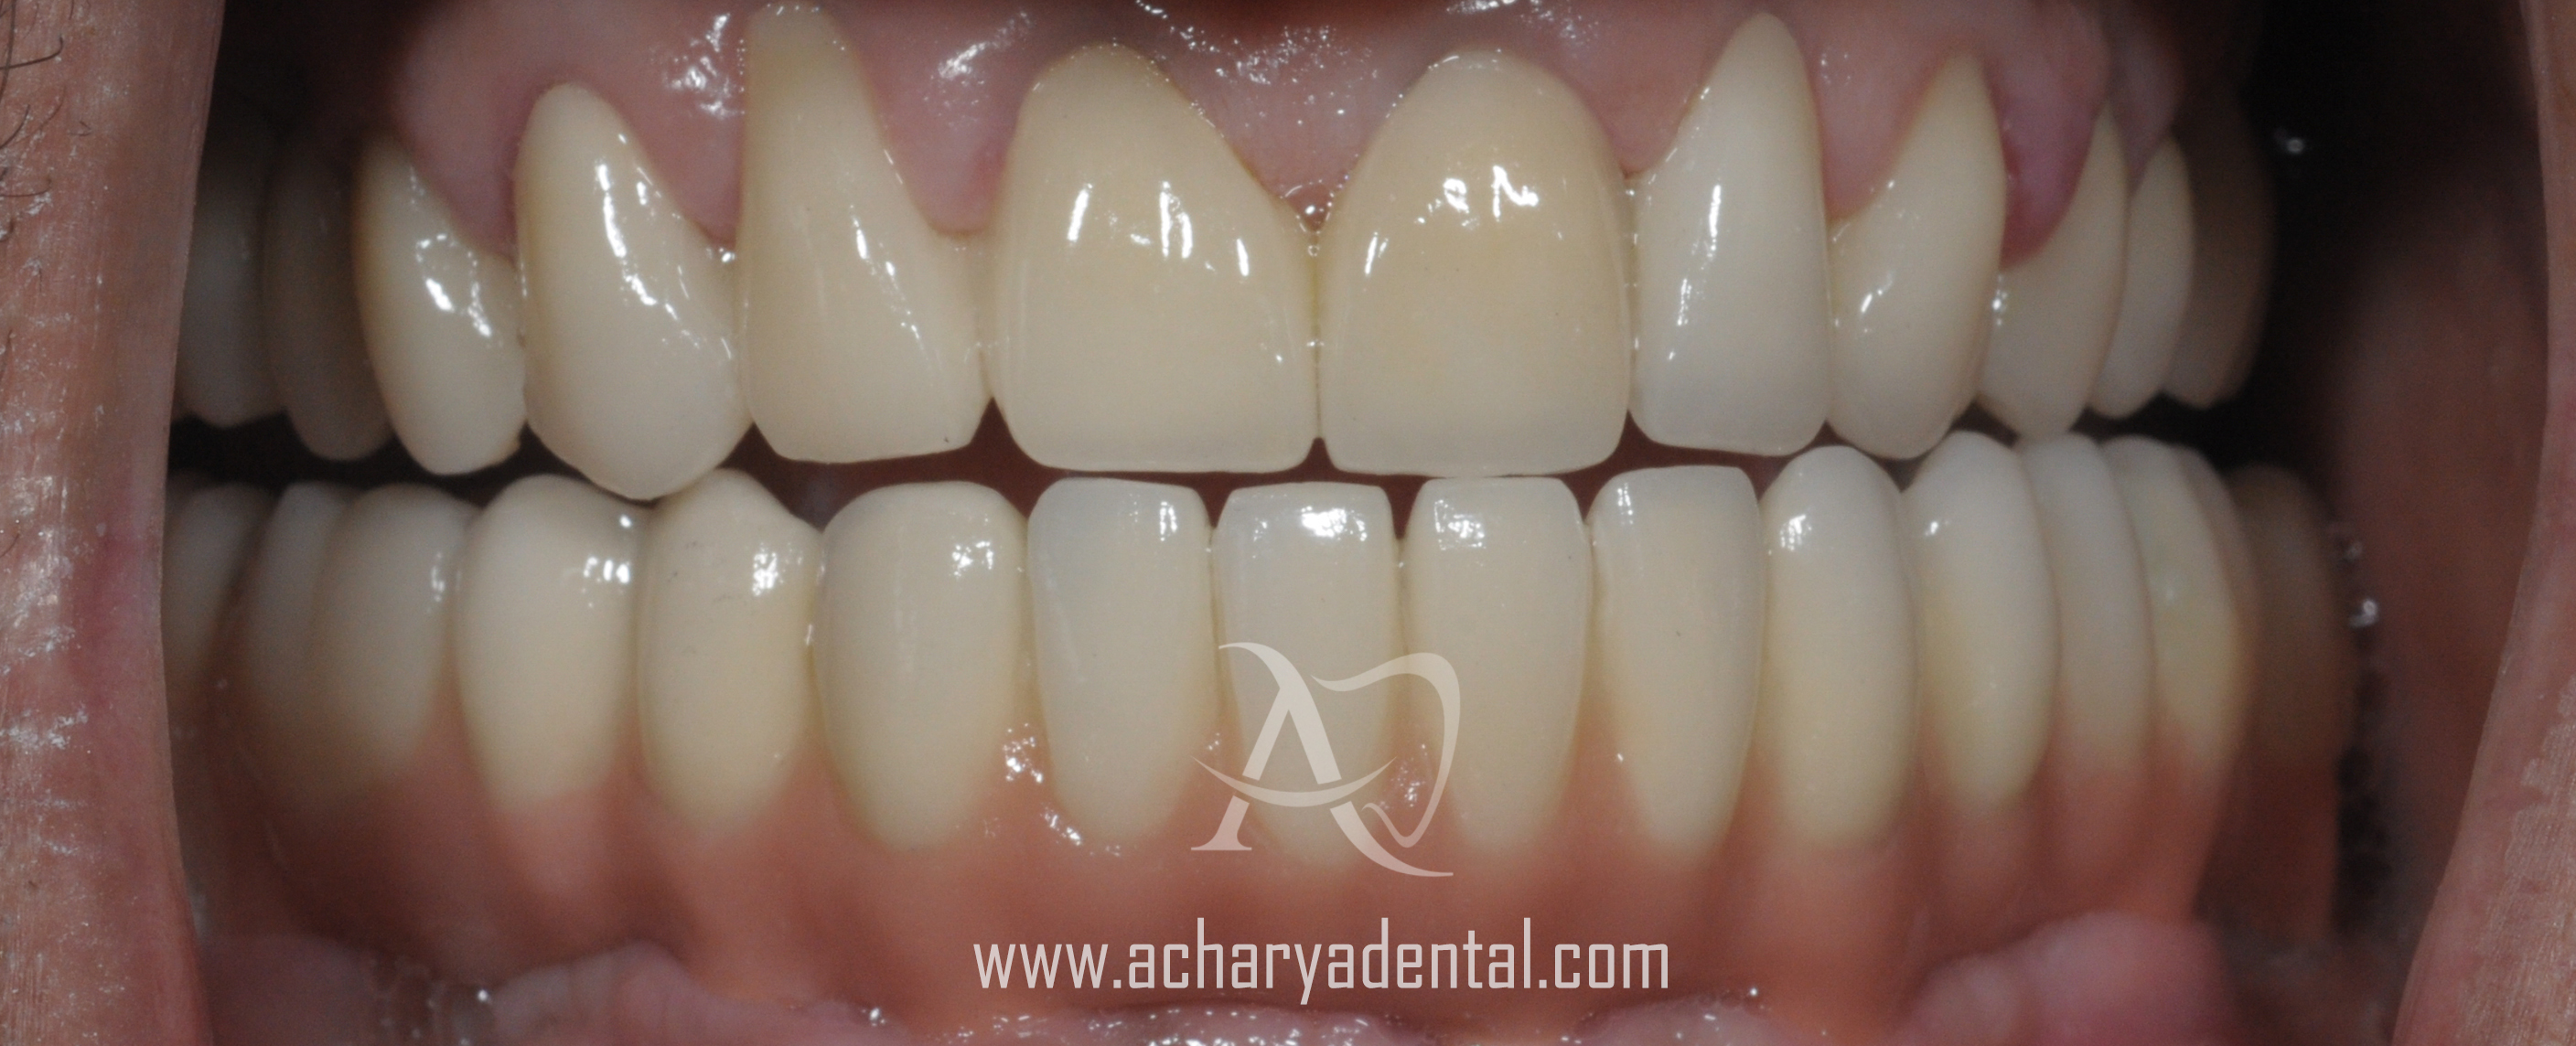 after dental implant diagnosis